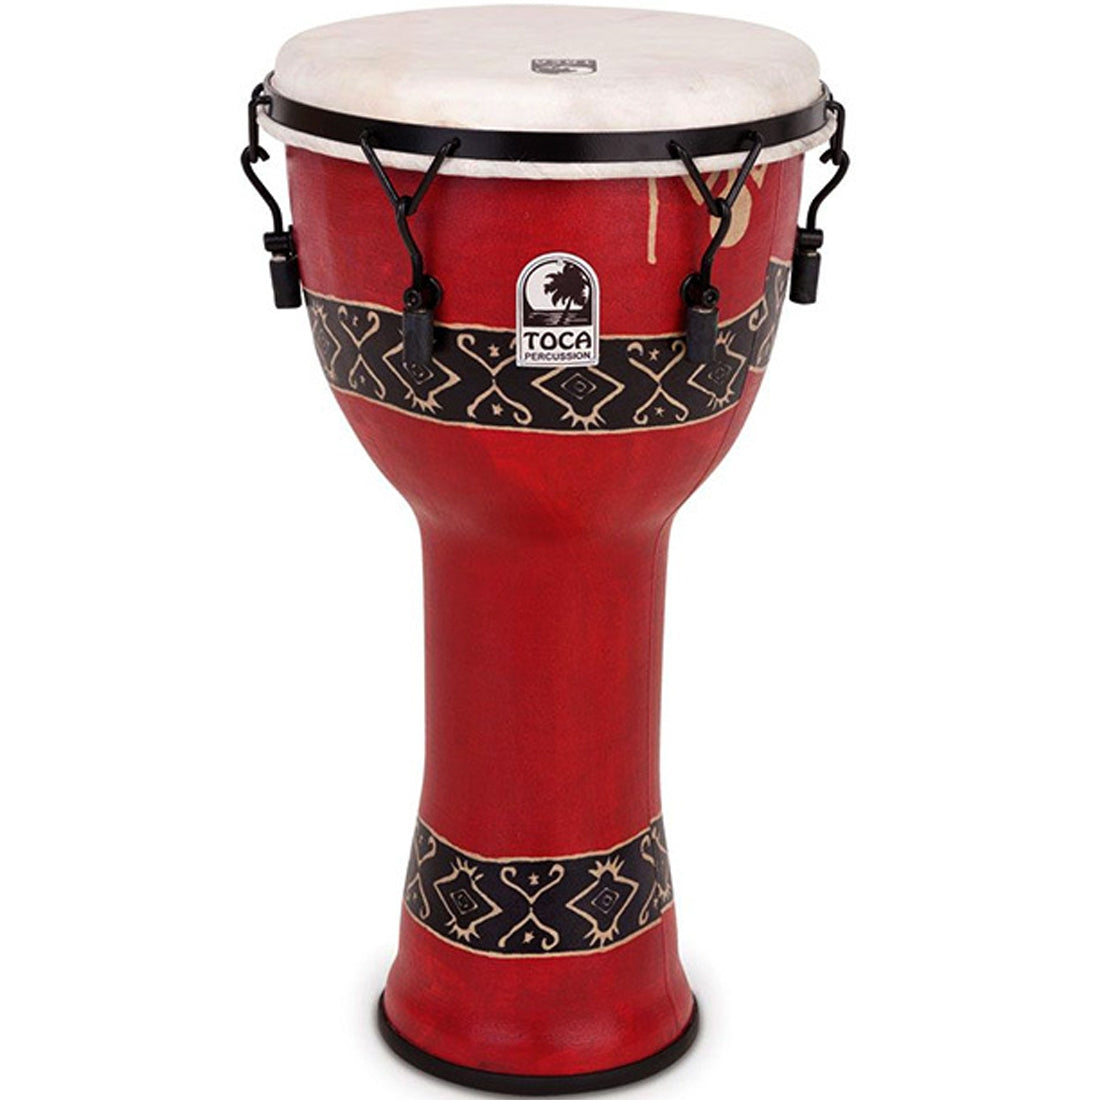 Toca Freestyle 2 Series Djembe 10inch Bali Red Print Mech Tune - TF2DM10RP